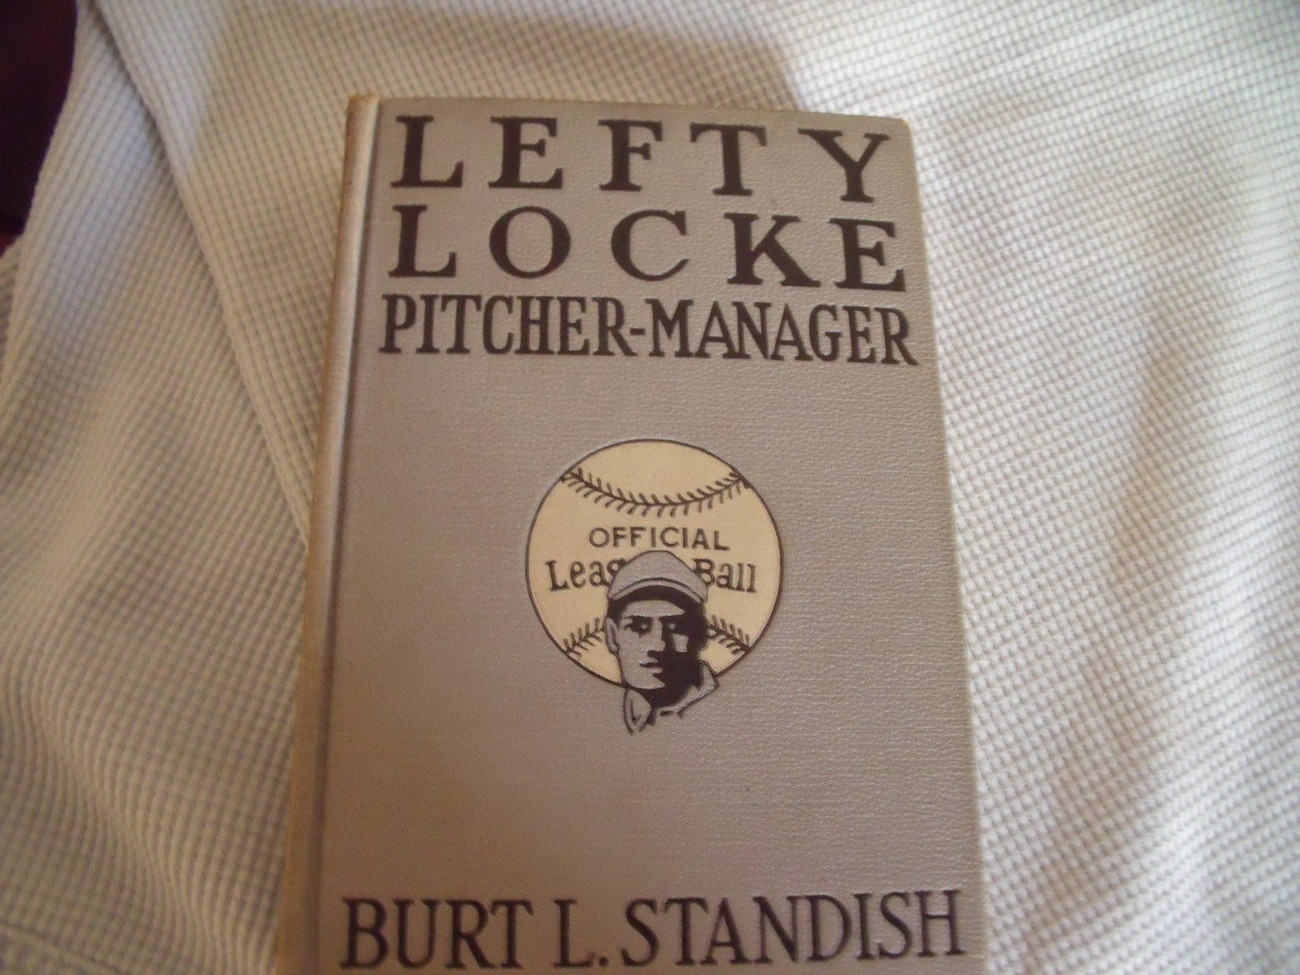 Lefty Locke, Pitcher-Manager by Burt L. Standish first edition 1916